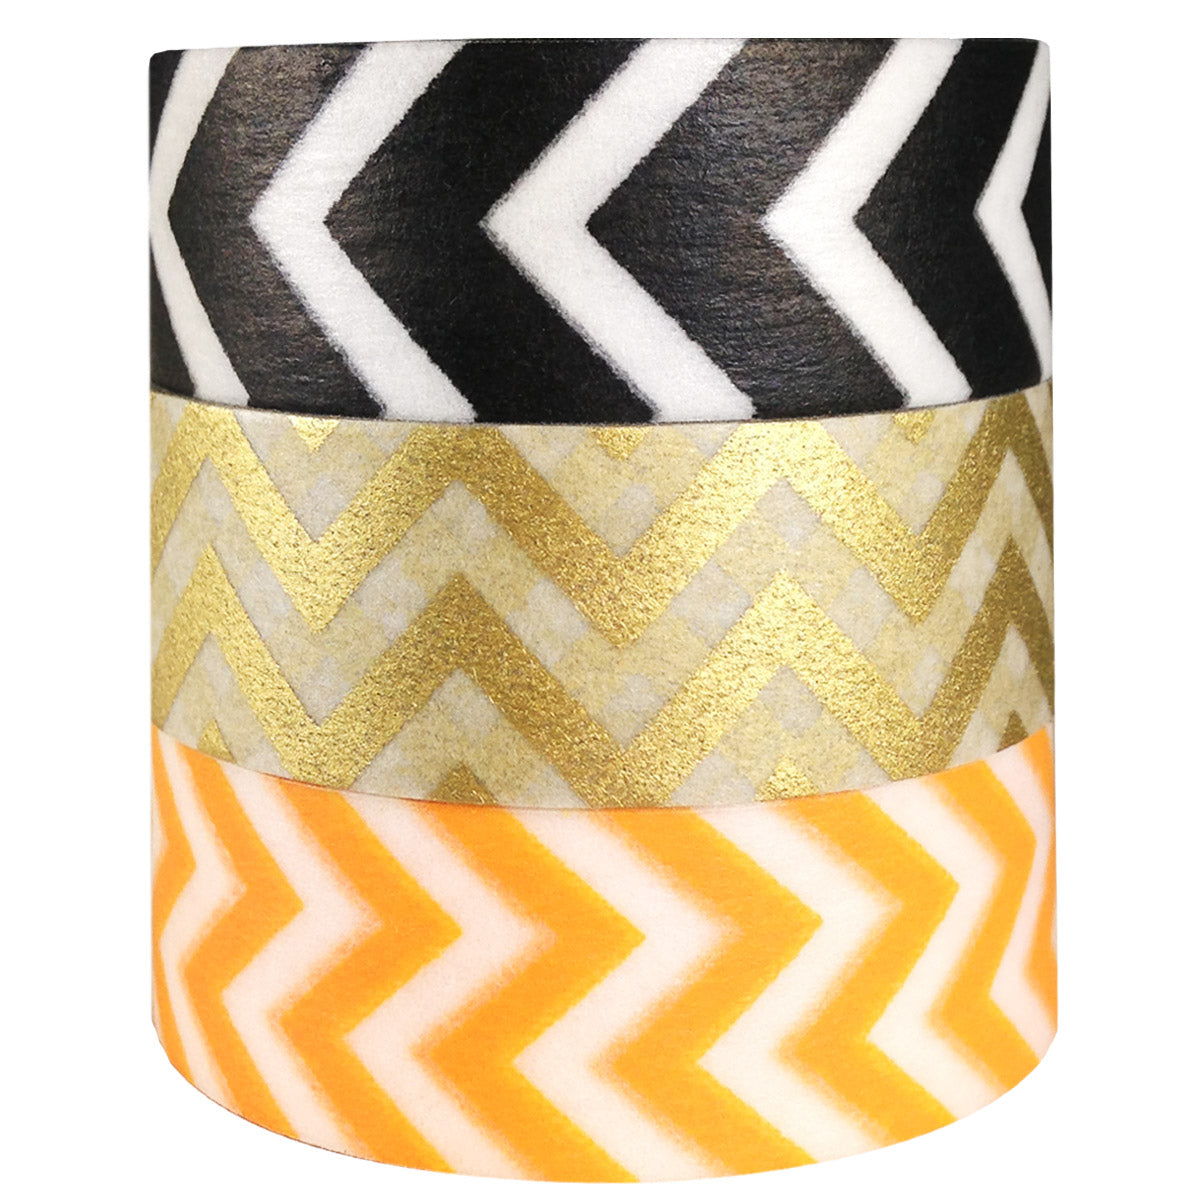 Wrapables Impressions Japanese Washi Masking Tape (set of 3)